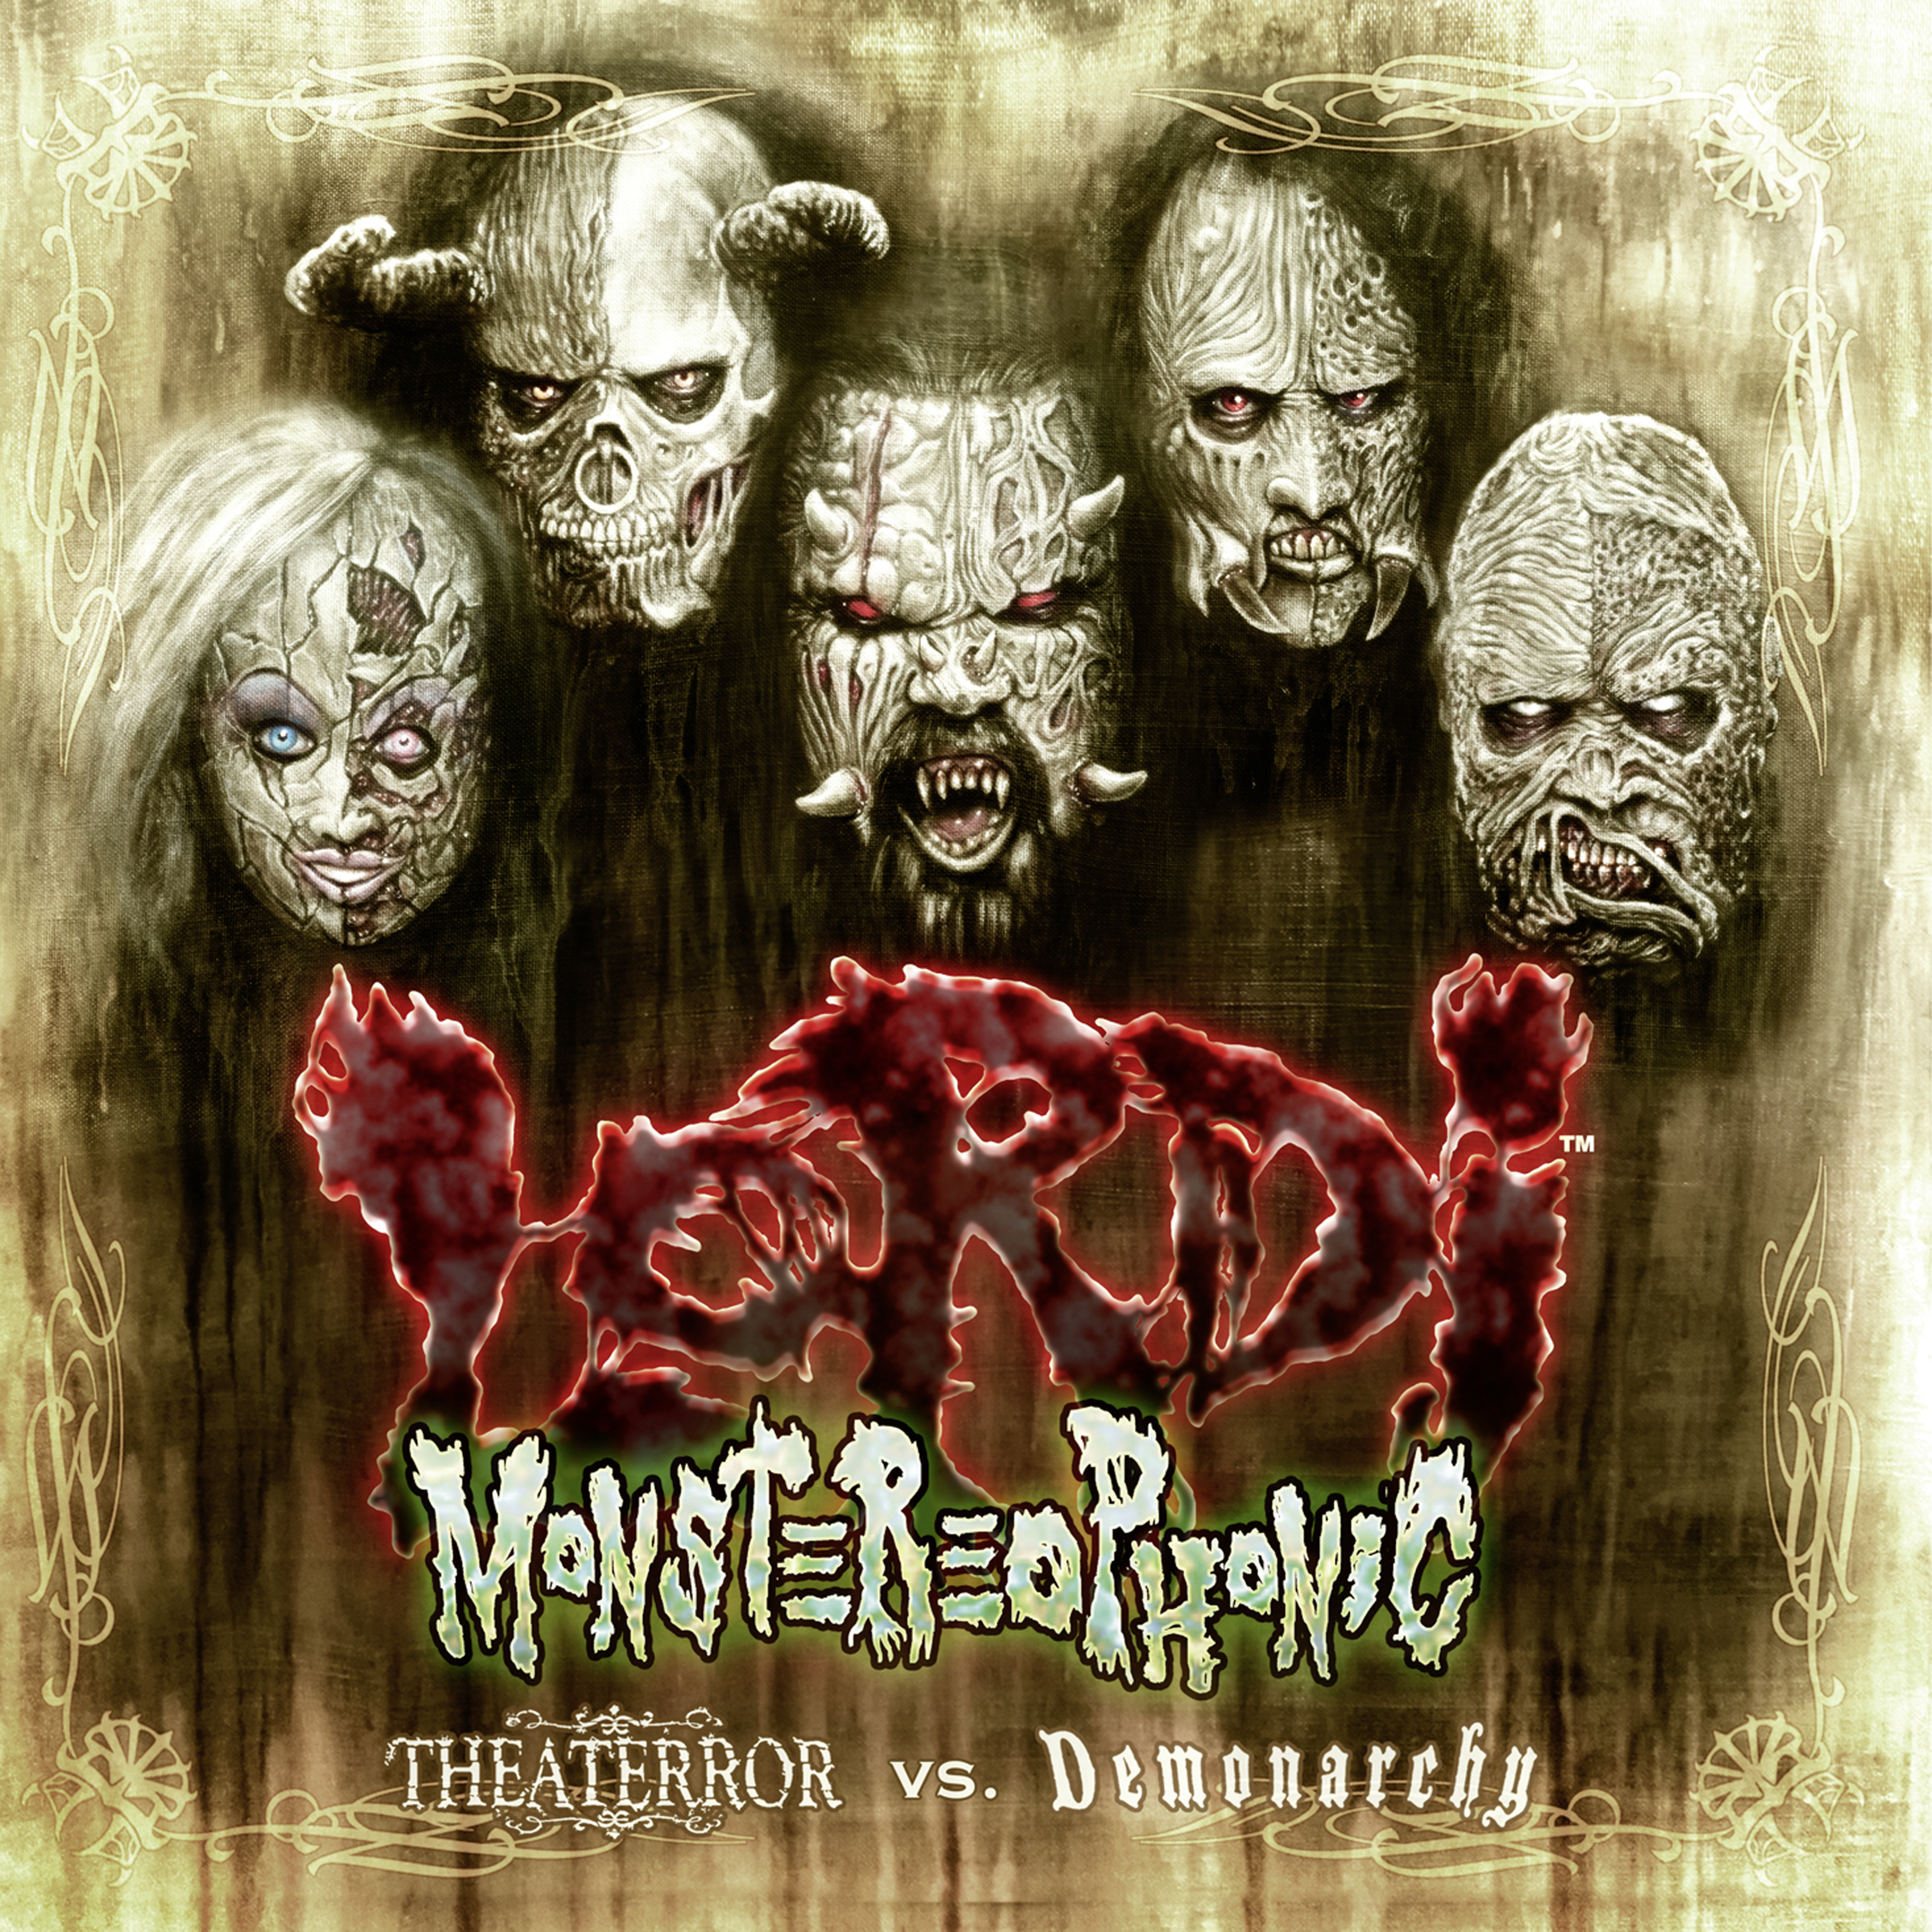 lordi-monsterephonic